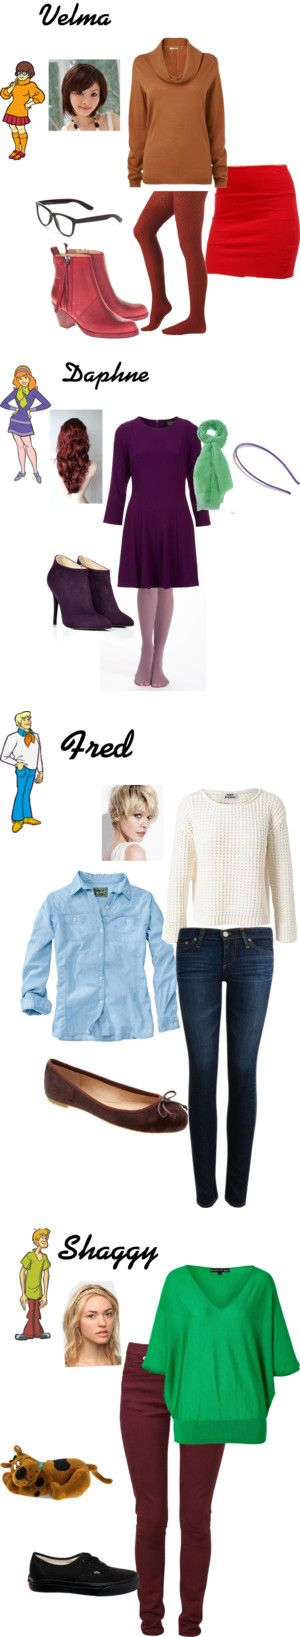 Casual cosplay of Velma, Daphne, Fred, and Shaggy (from Scooby Doo TV series)-- character inspired outfit